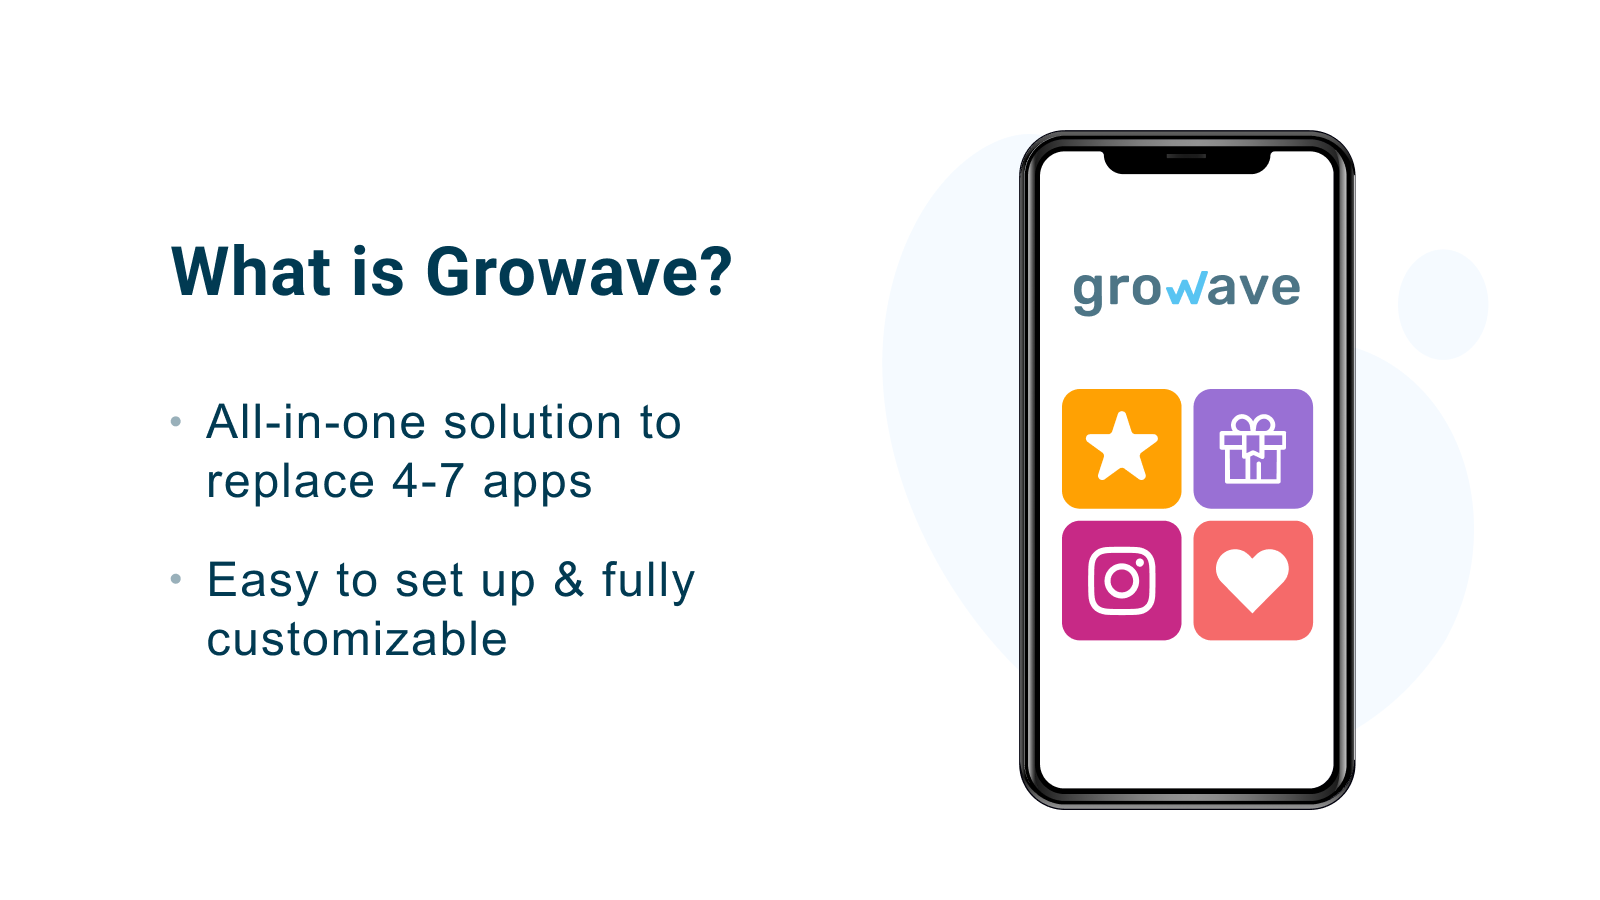 What is Growave?